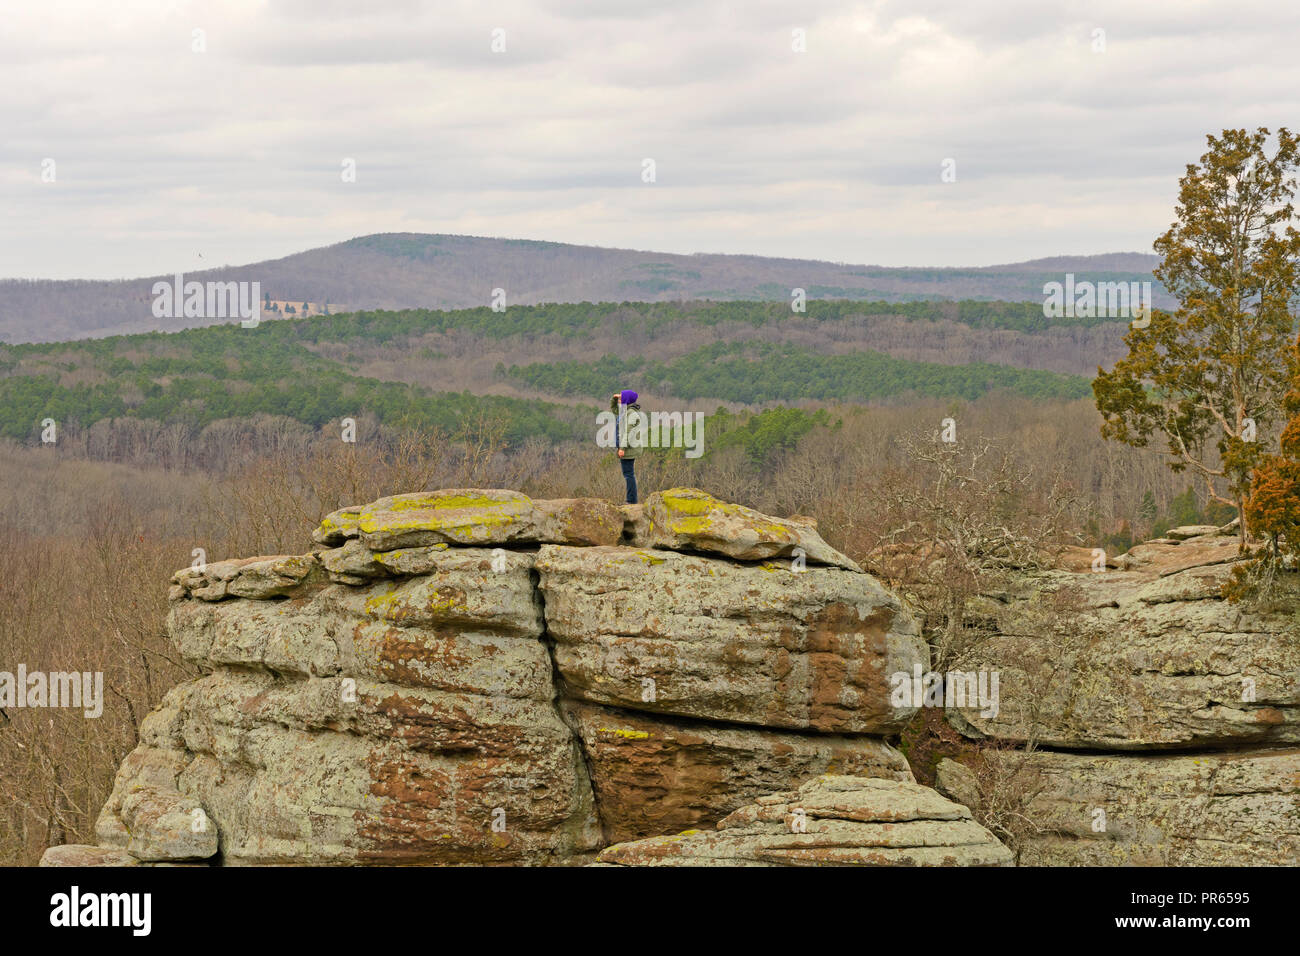 Searching across the canyon in Garden of the Gods in Shawnee National Forest in Illinois - Stock Image